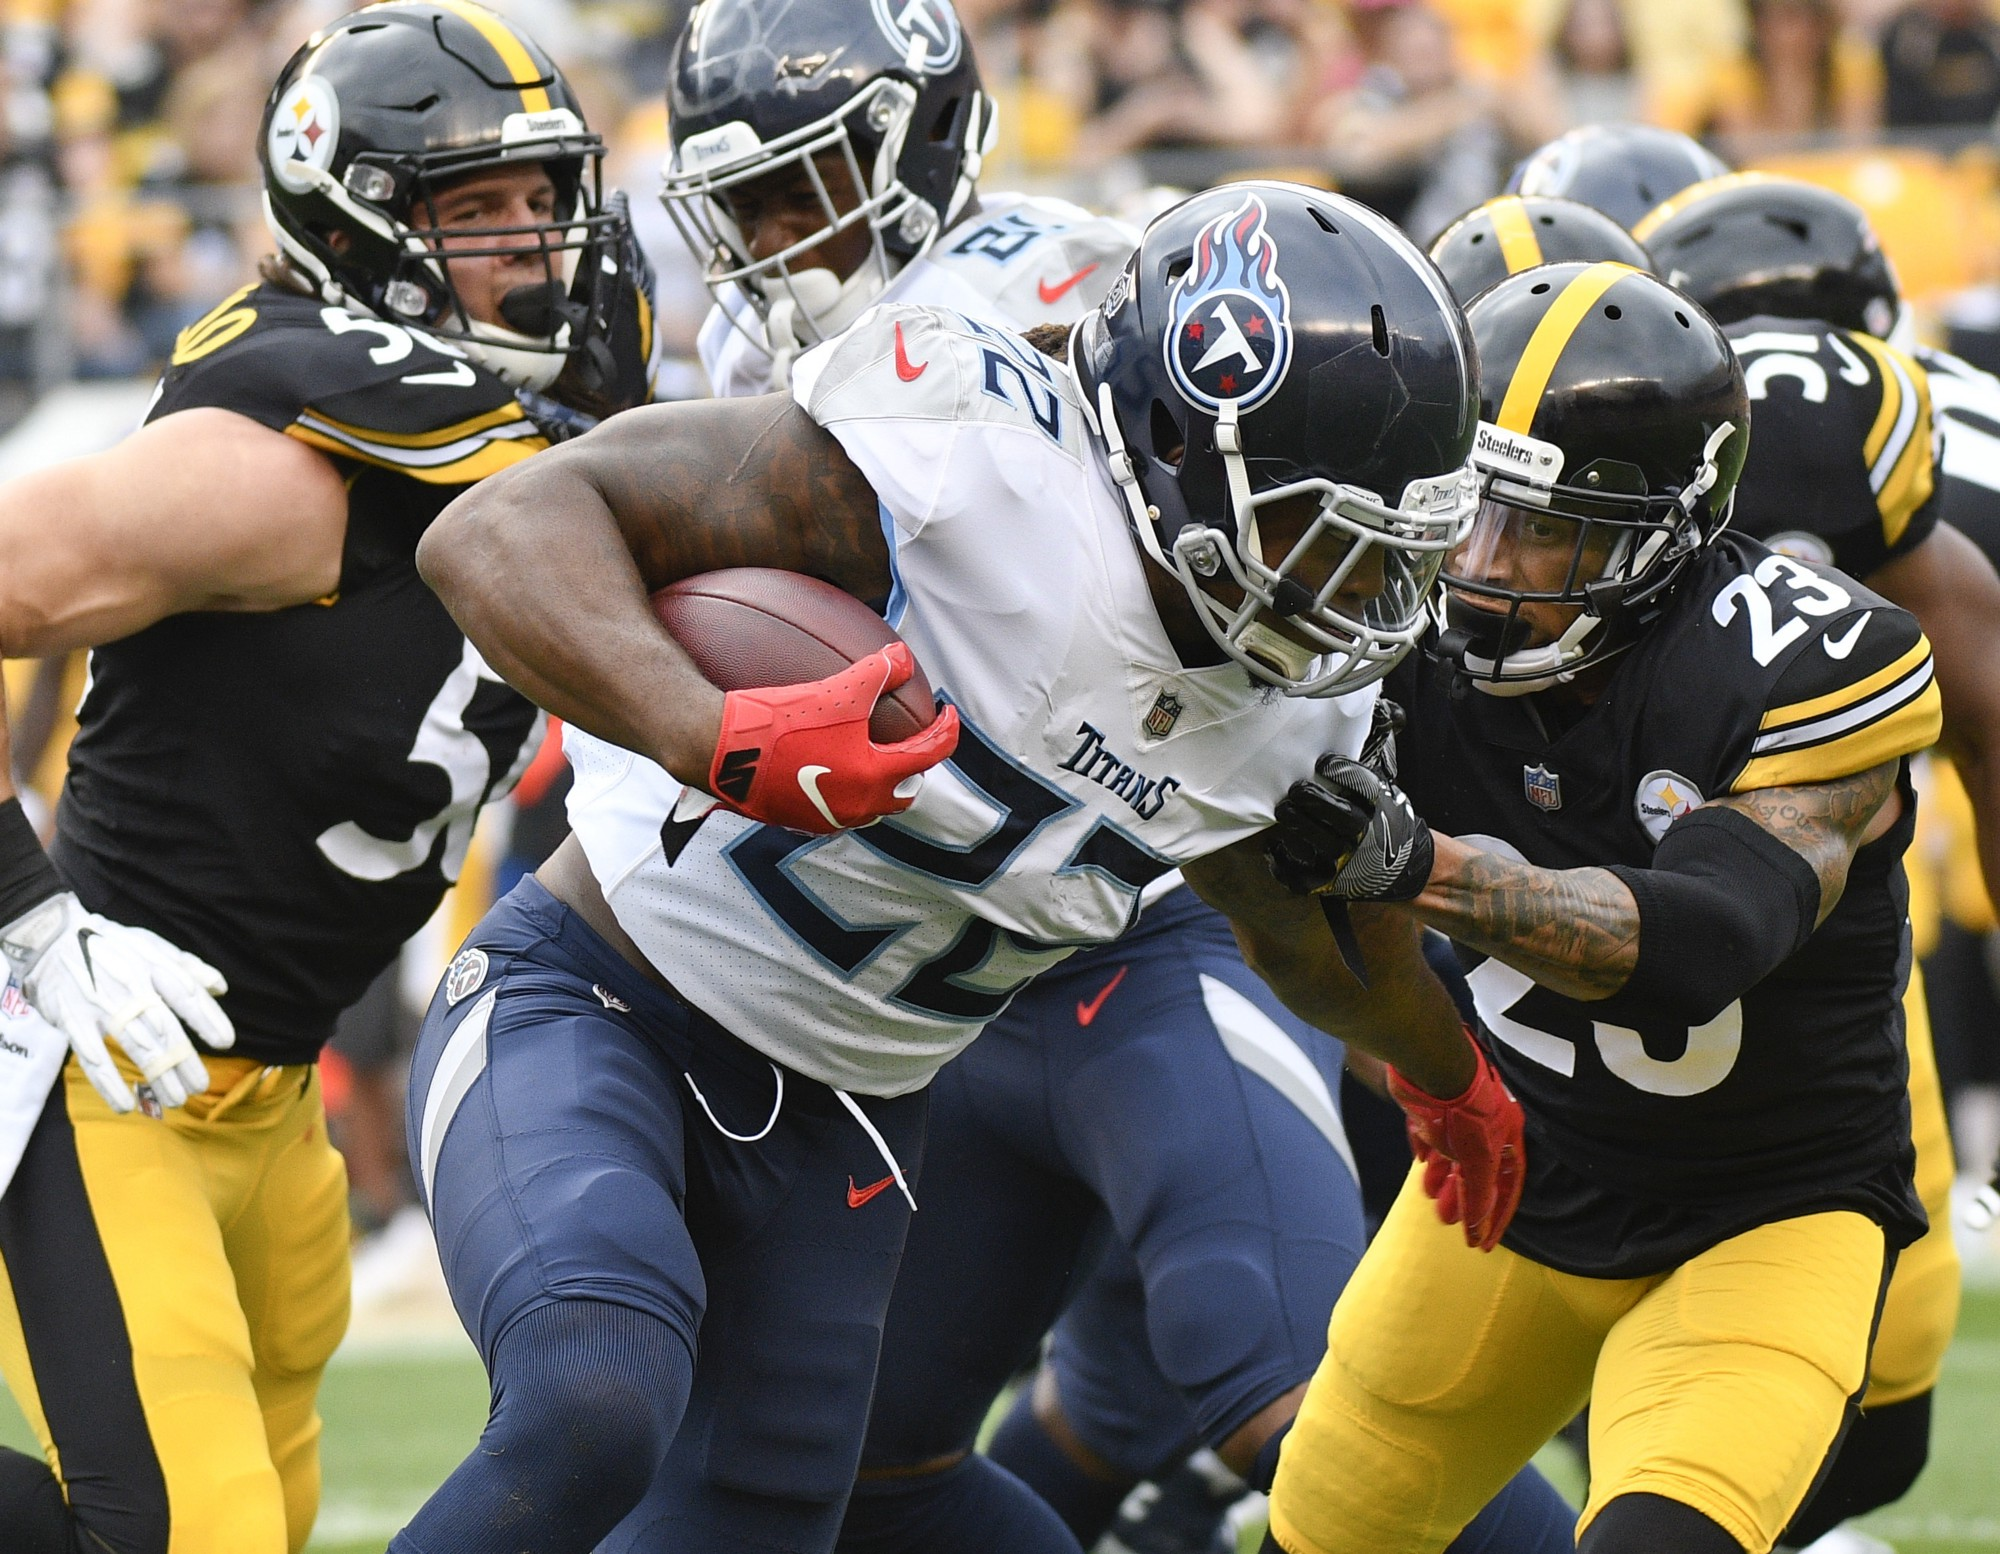 Will Derrick Henry and the Tennessee Titans continue their amazing run or will the Steel Curtain win this for Pittsburgh?